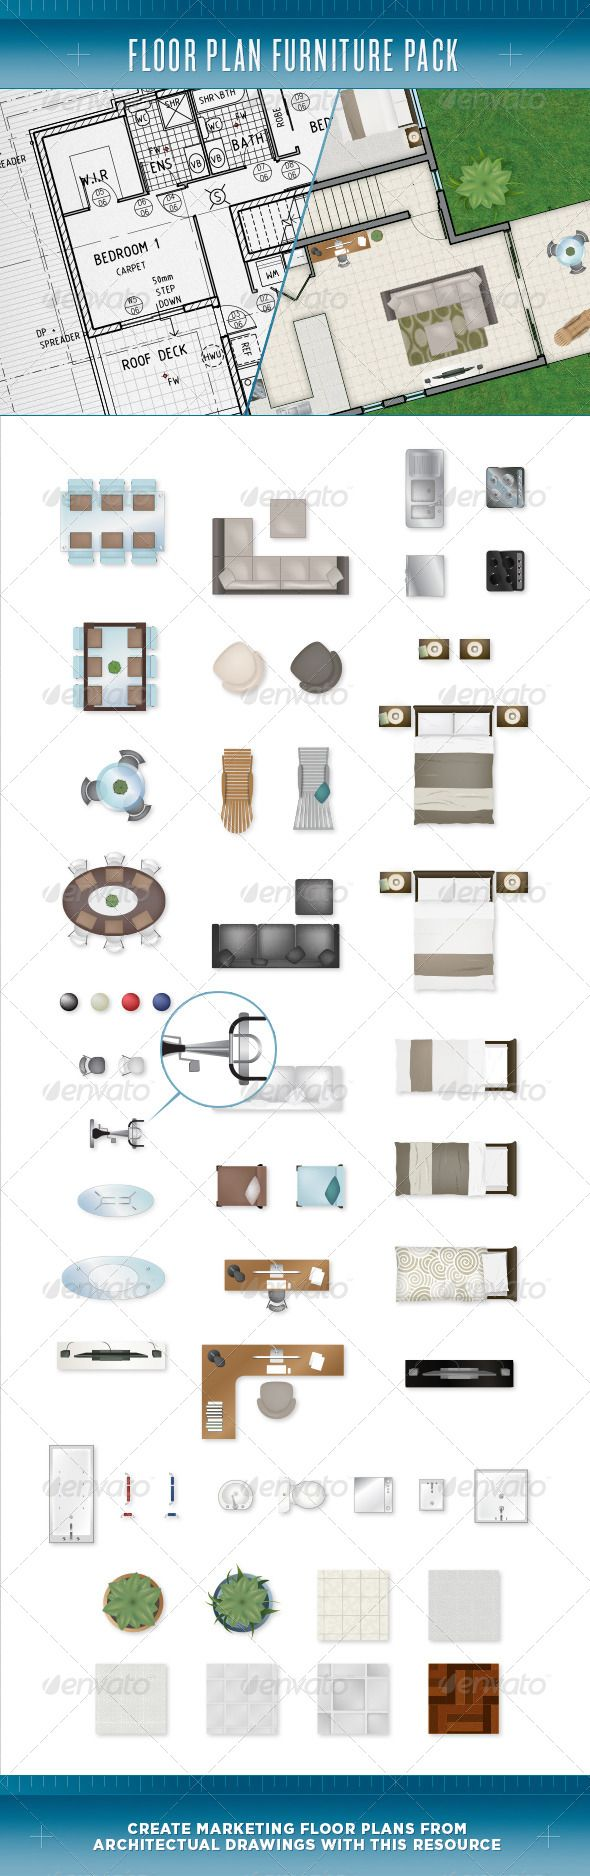 Floor Plan Furniture Pack — Vector EPS #house plan #television • Available here → https://graphicriver.net/item/floor-plan-furniture-pack/3793645?ref=pxcr